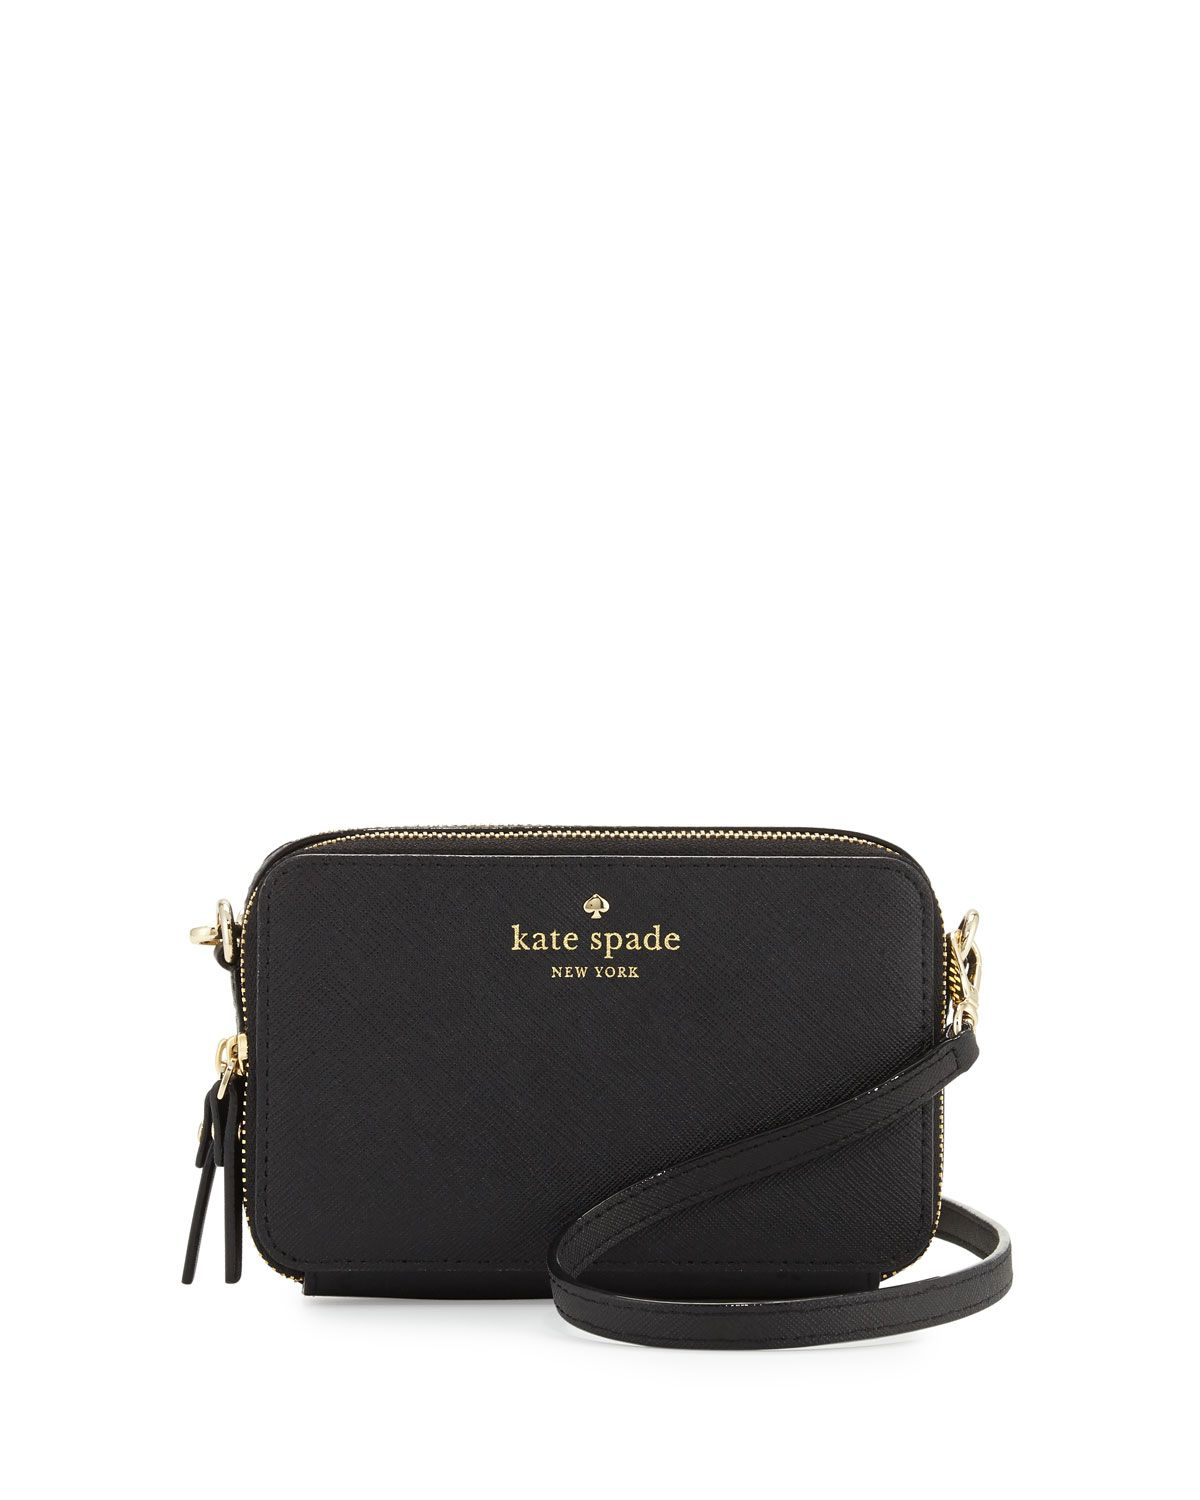 Cedar Street Carine Crossbody Bag Black Kate Spade New York